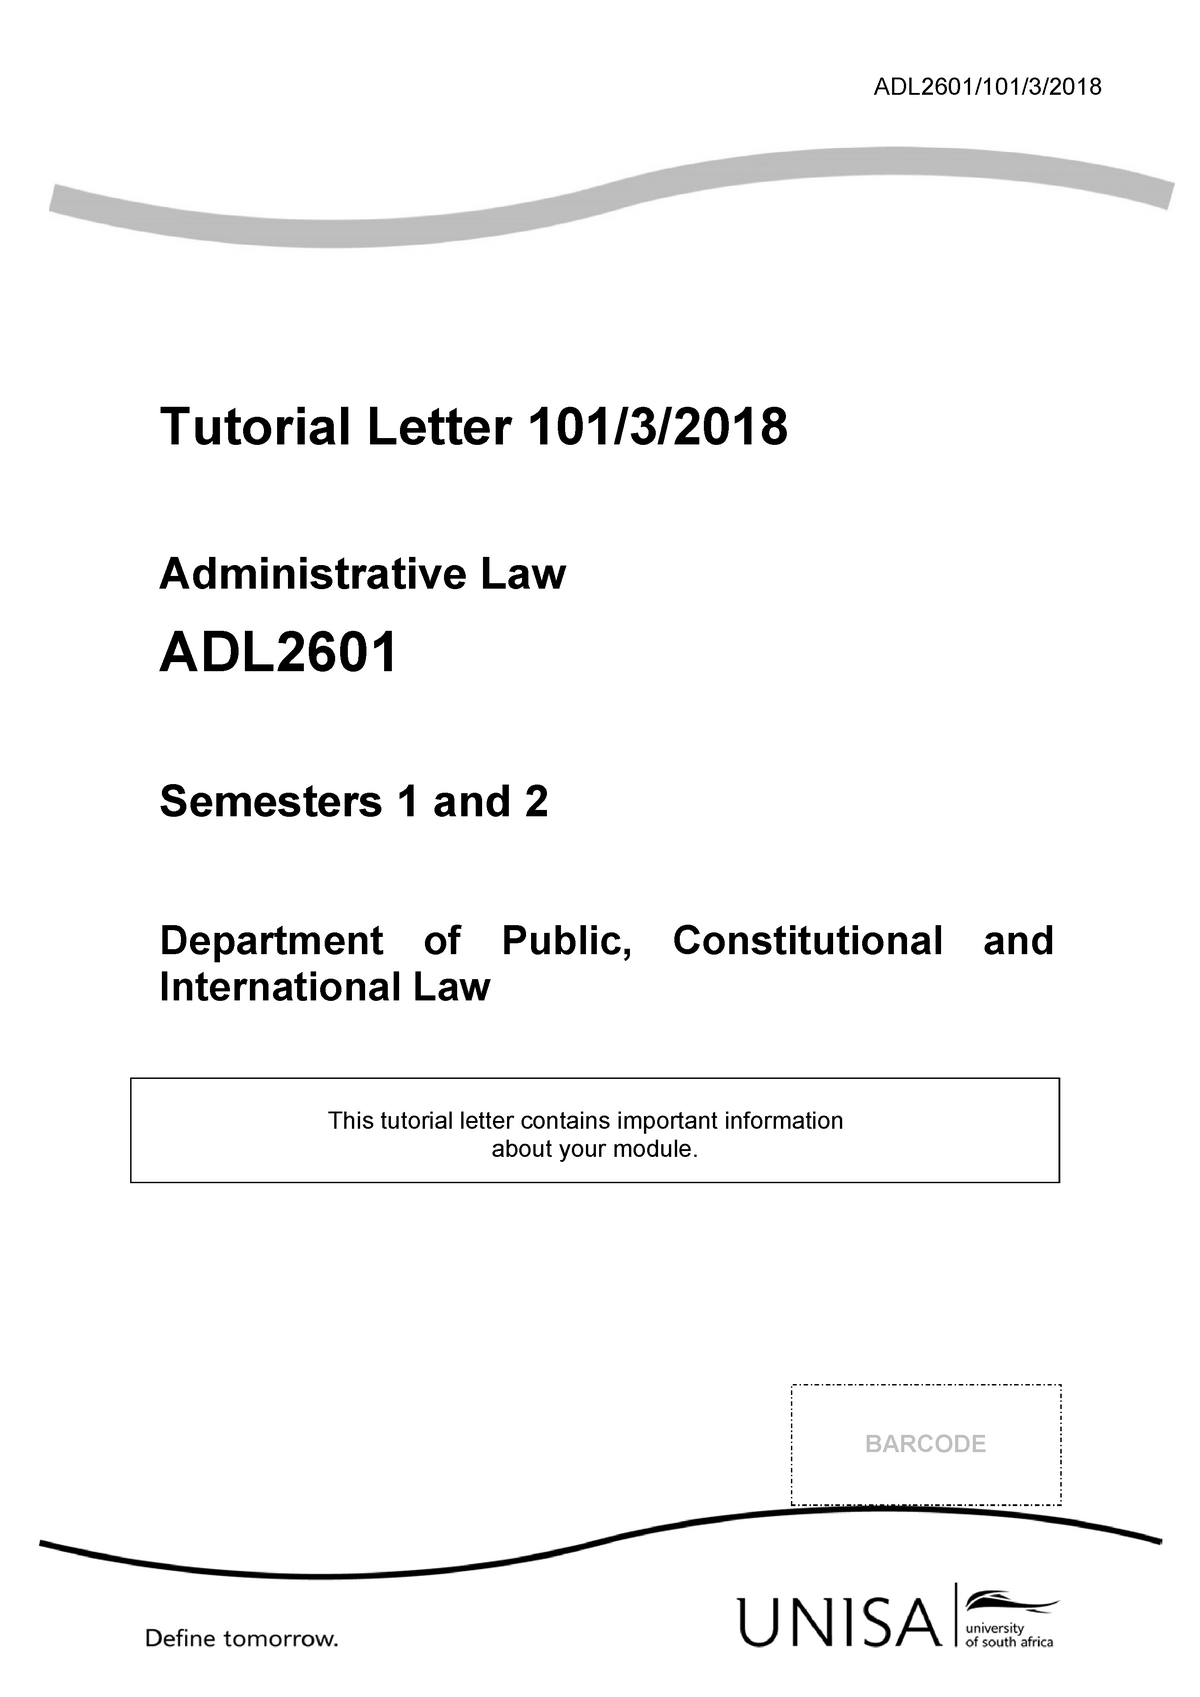 ADL2601 - Tutorial letter - Semesters 1 and 2 -2018 - ADL2601